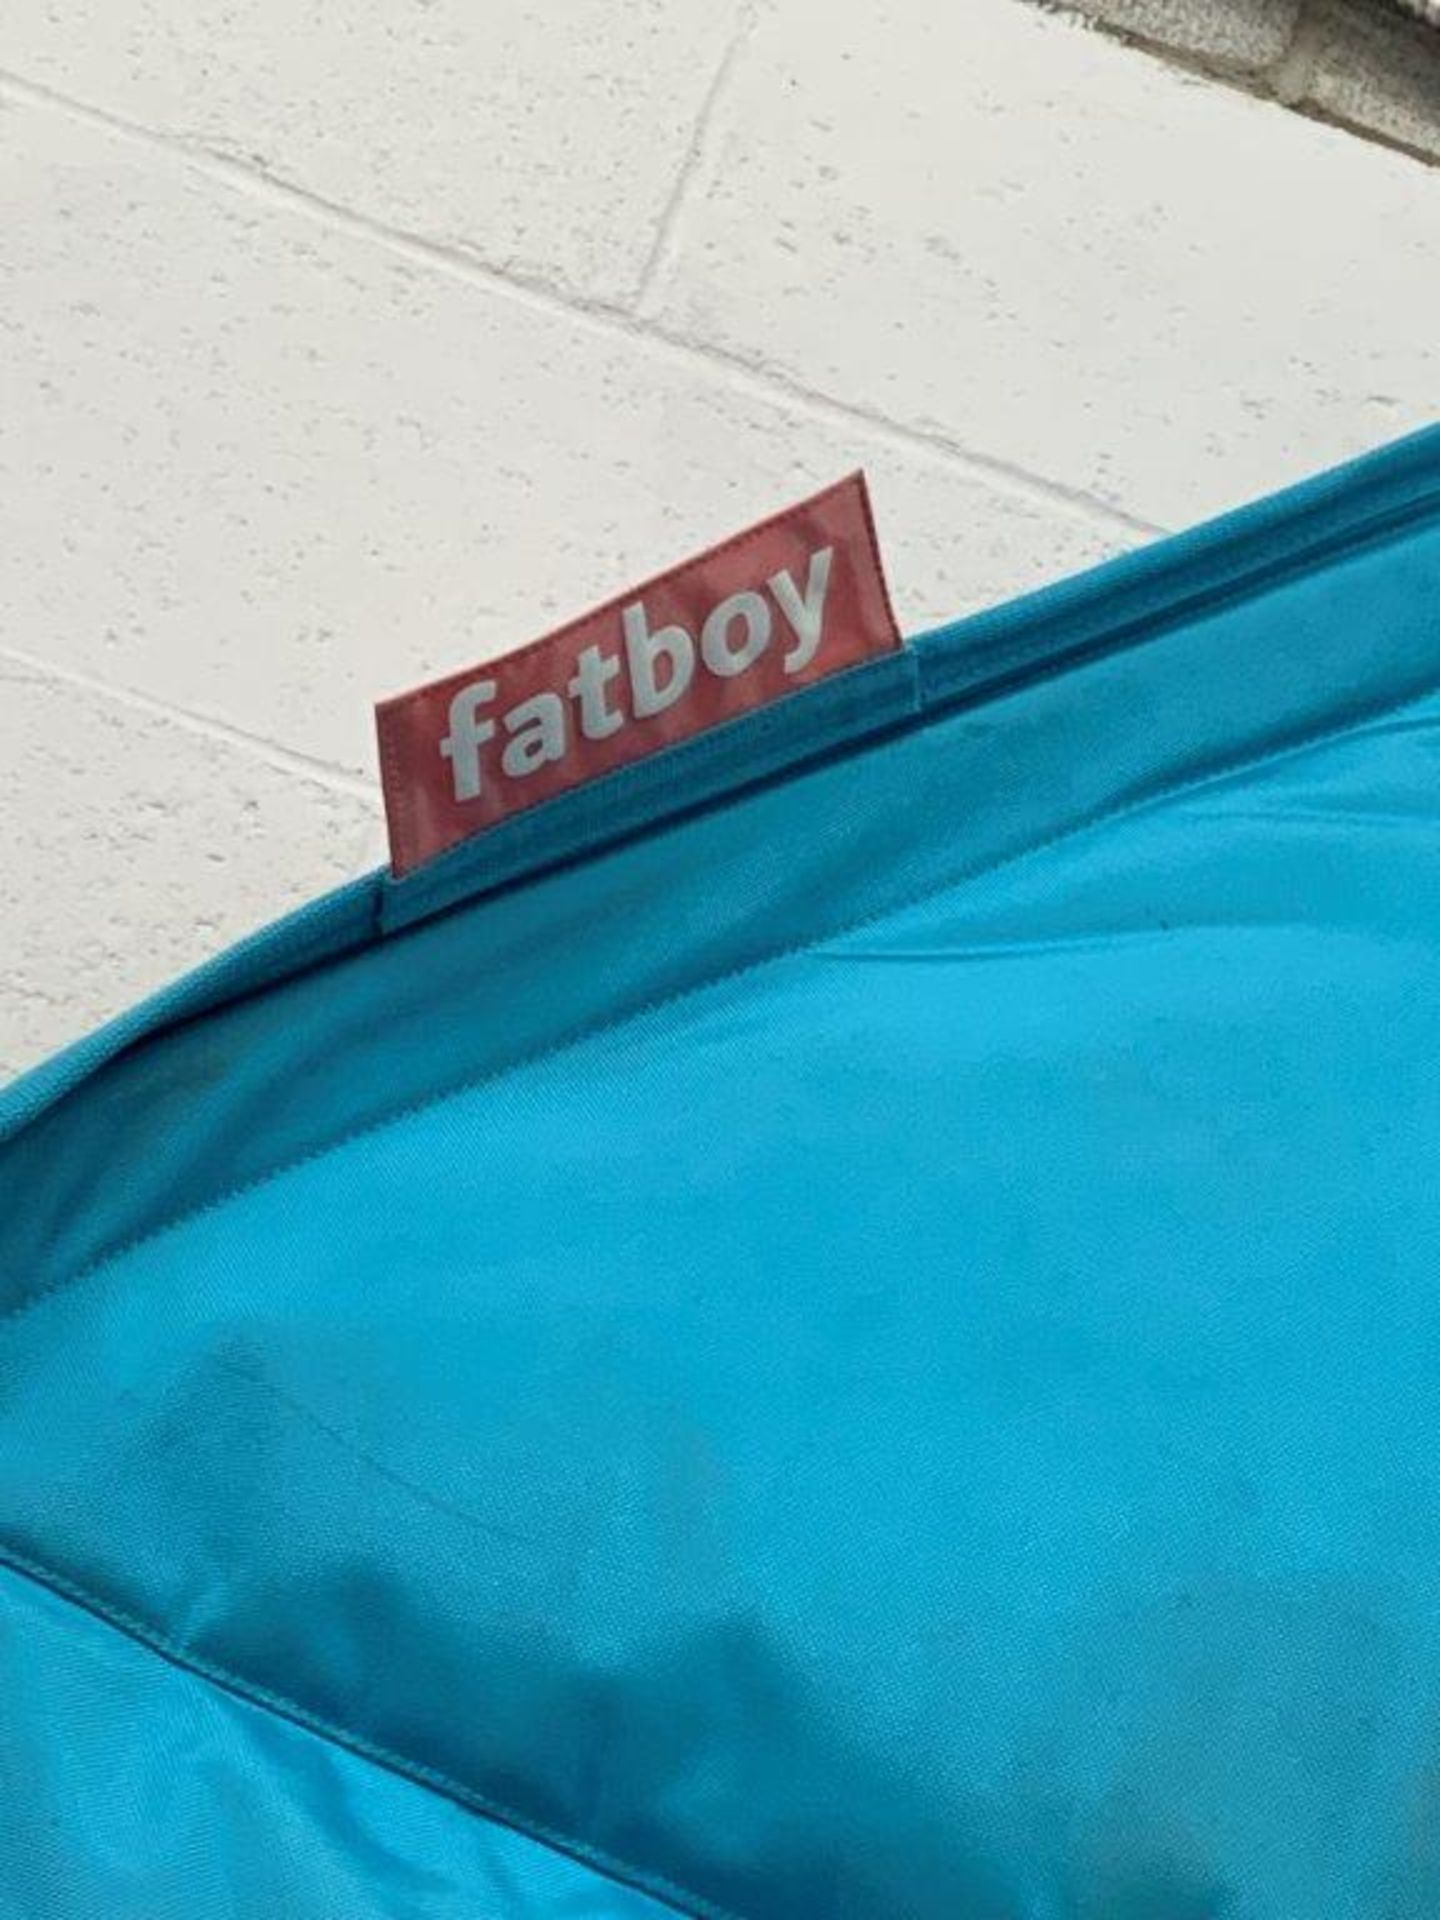 FATBOY Hamac - 2 personnes - Image 2 of 2